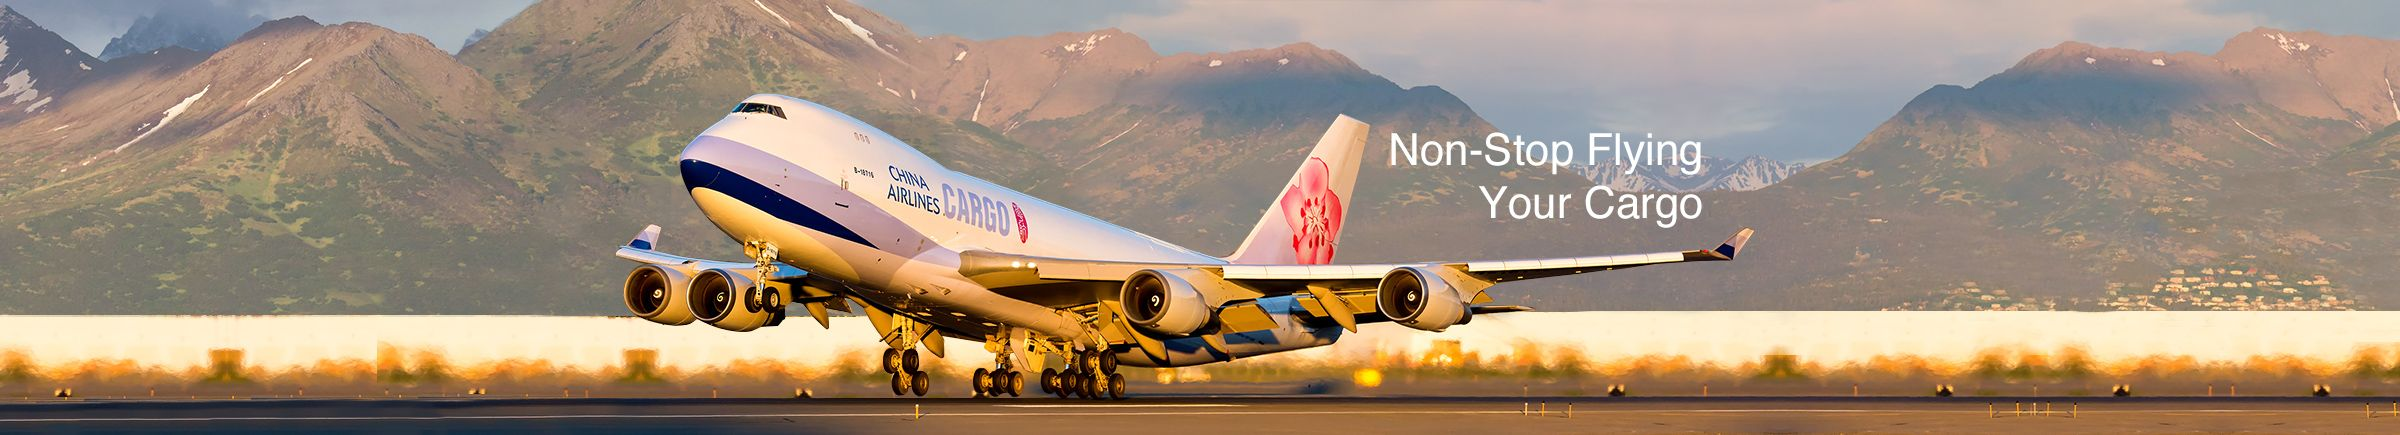 China Airlines Cargo Services China airlines, Cargo